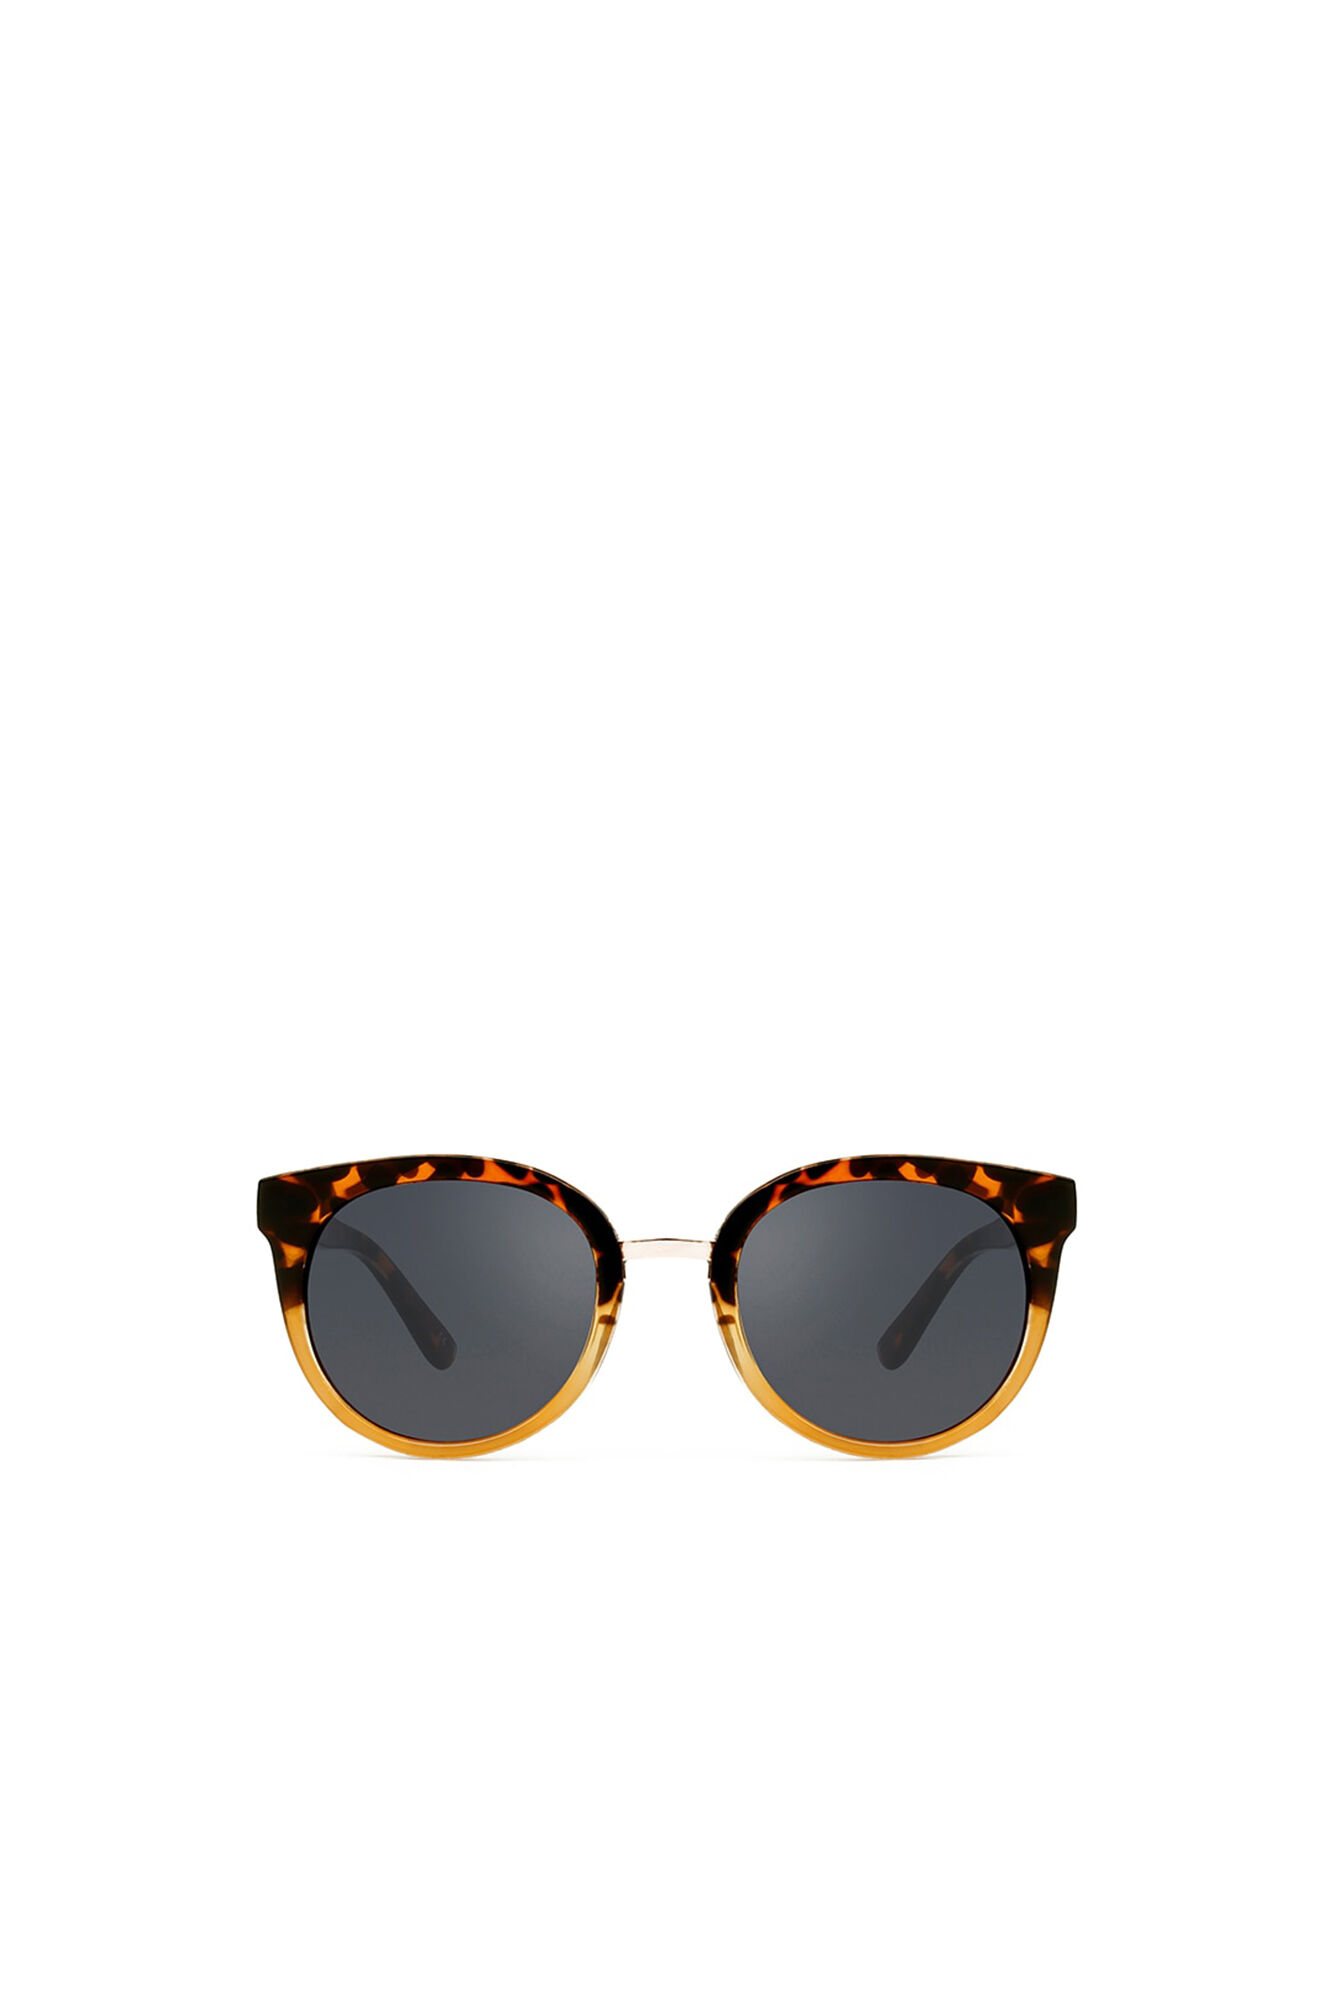 Gray AC10342, DEMI TORTOISE YELLOW